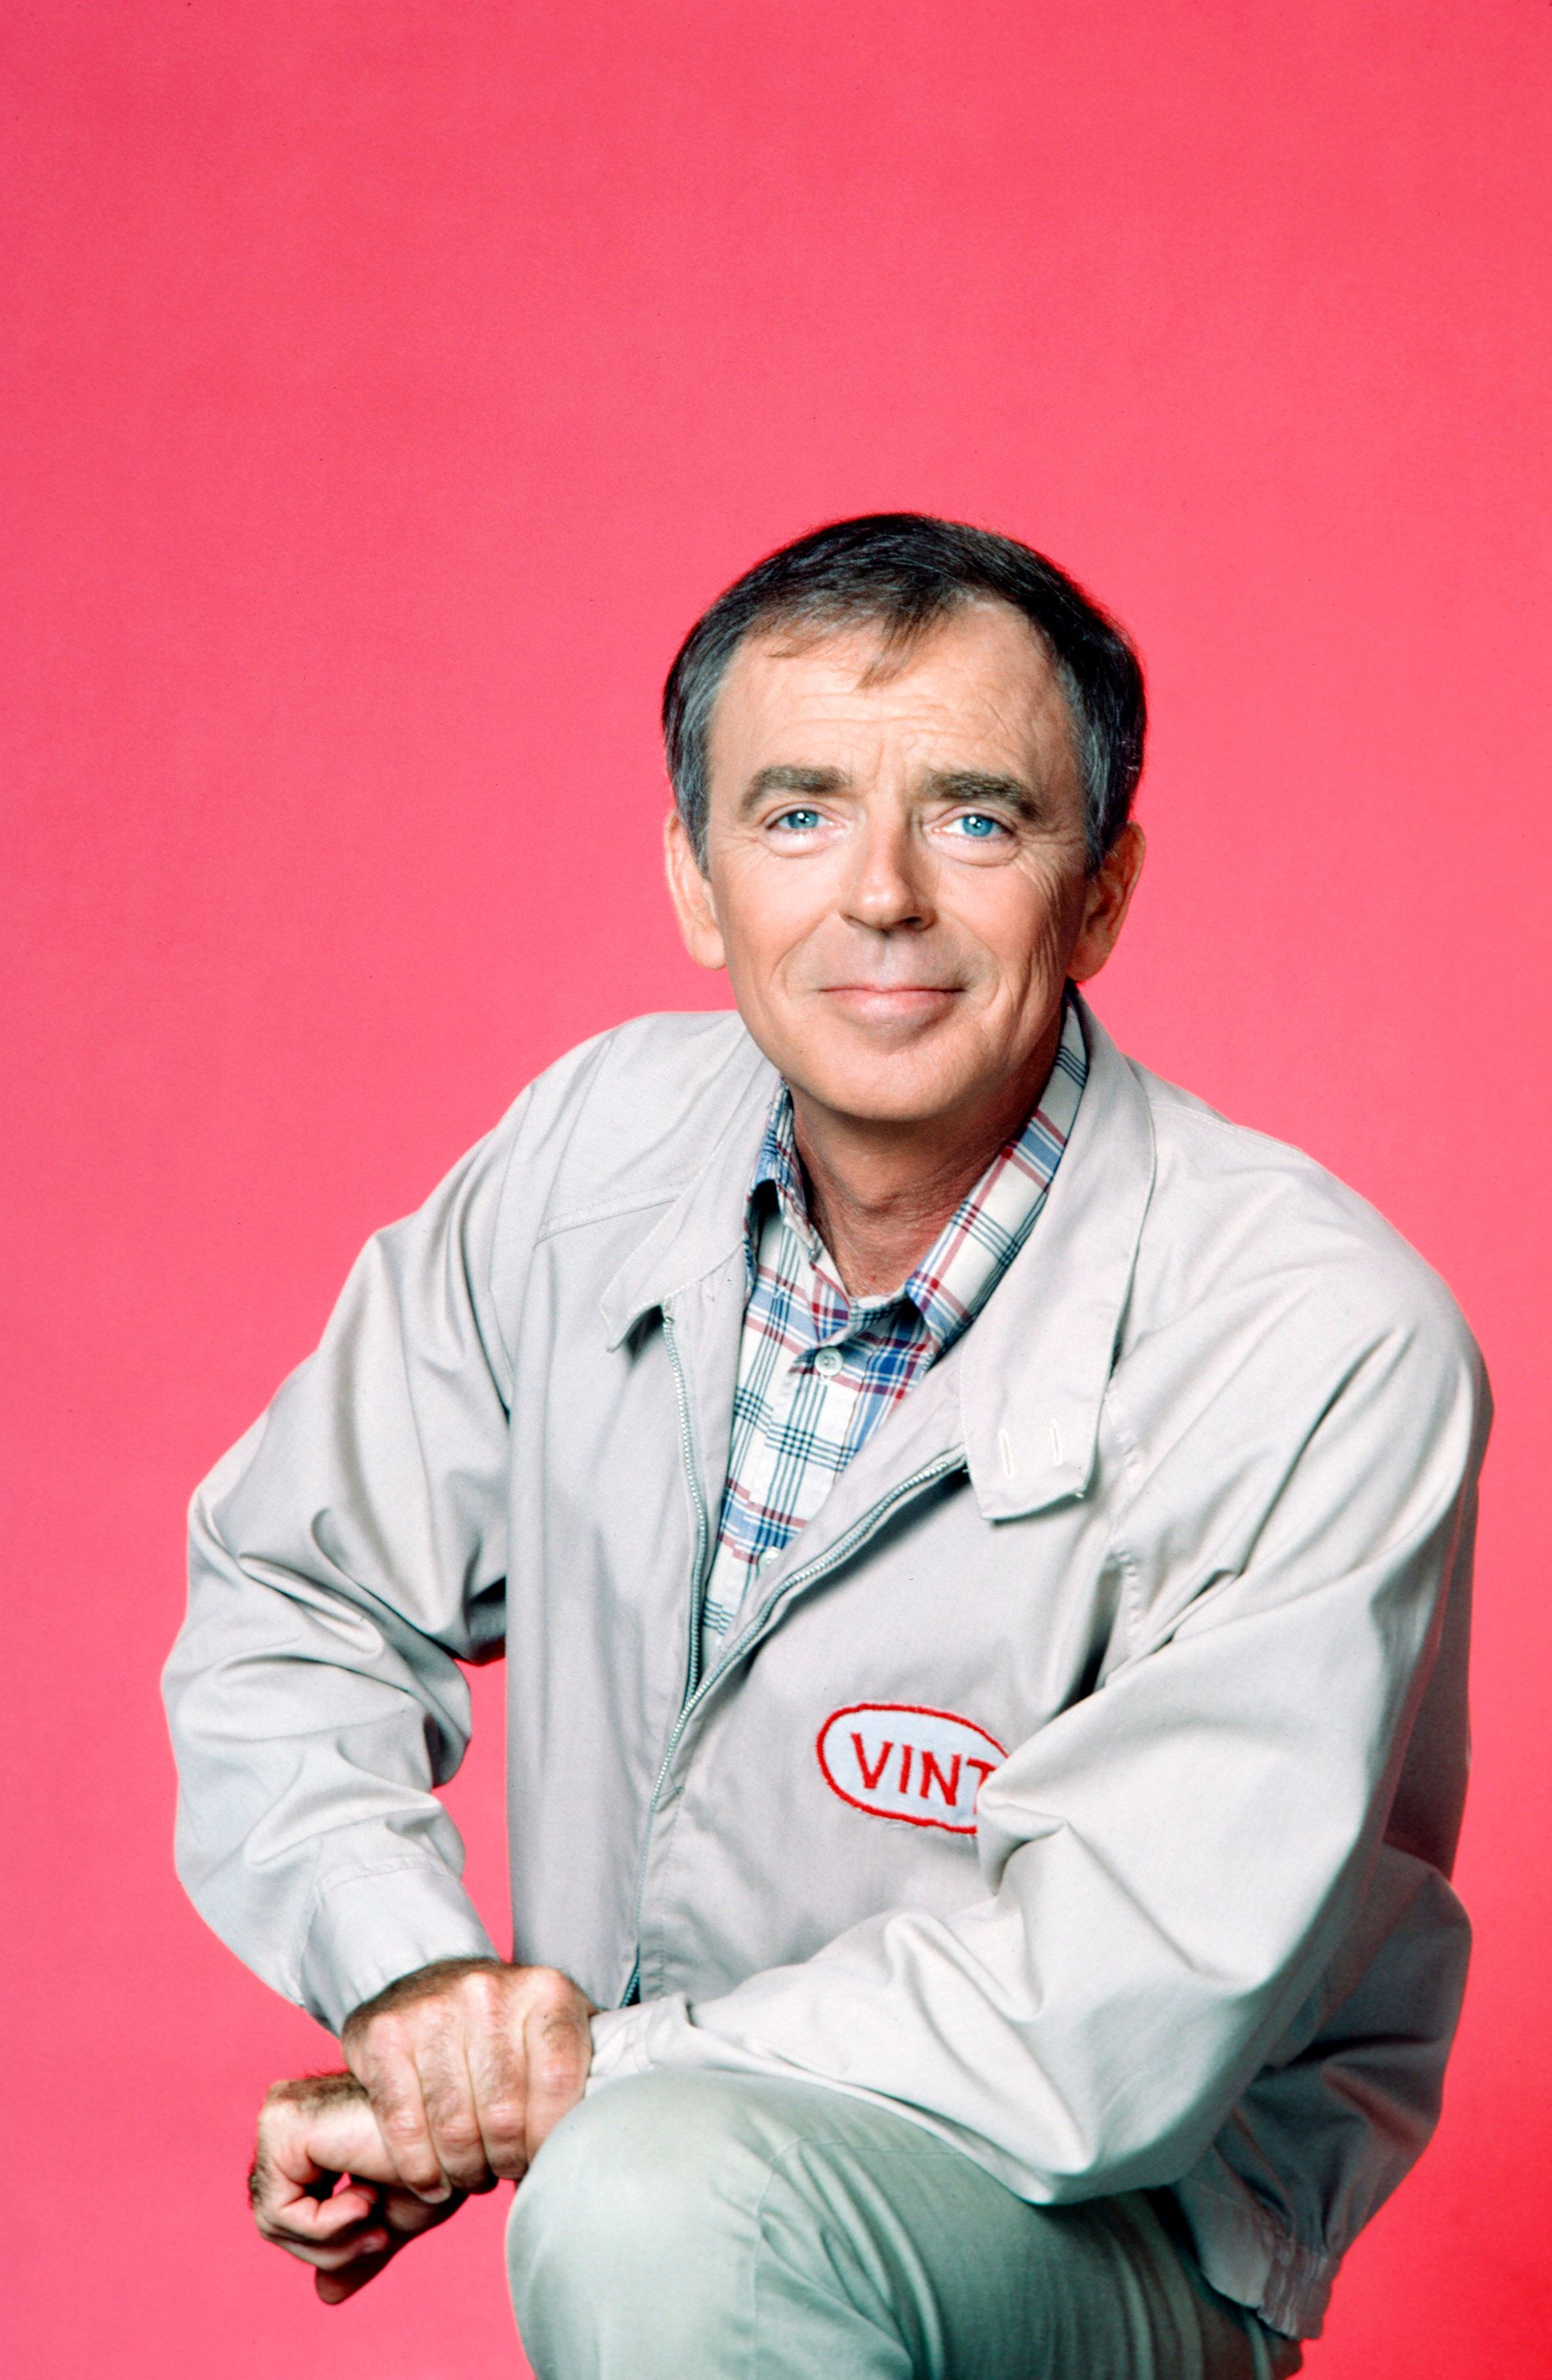 MAMA'S FAMILY -- Season 2 Gallery -- Pictured: Ken Berry as Vinton Harper -- (Photo by: Ron Tom/NBC/NBCU Photo Bank via Getty Images)